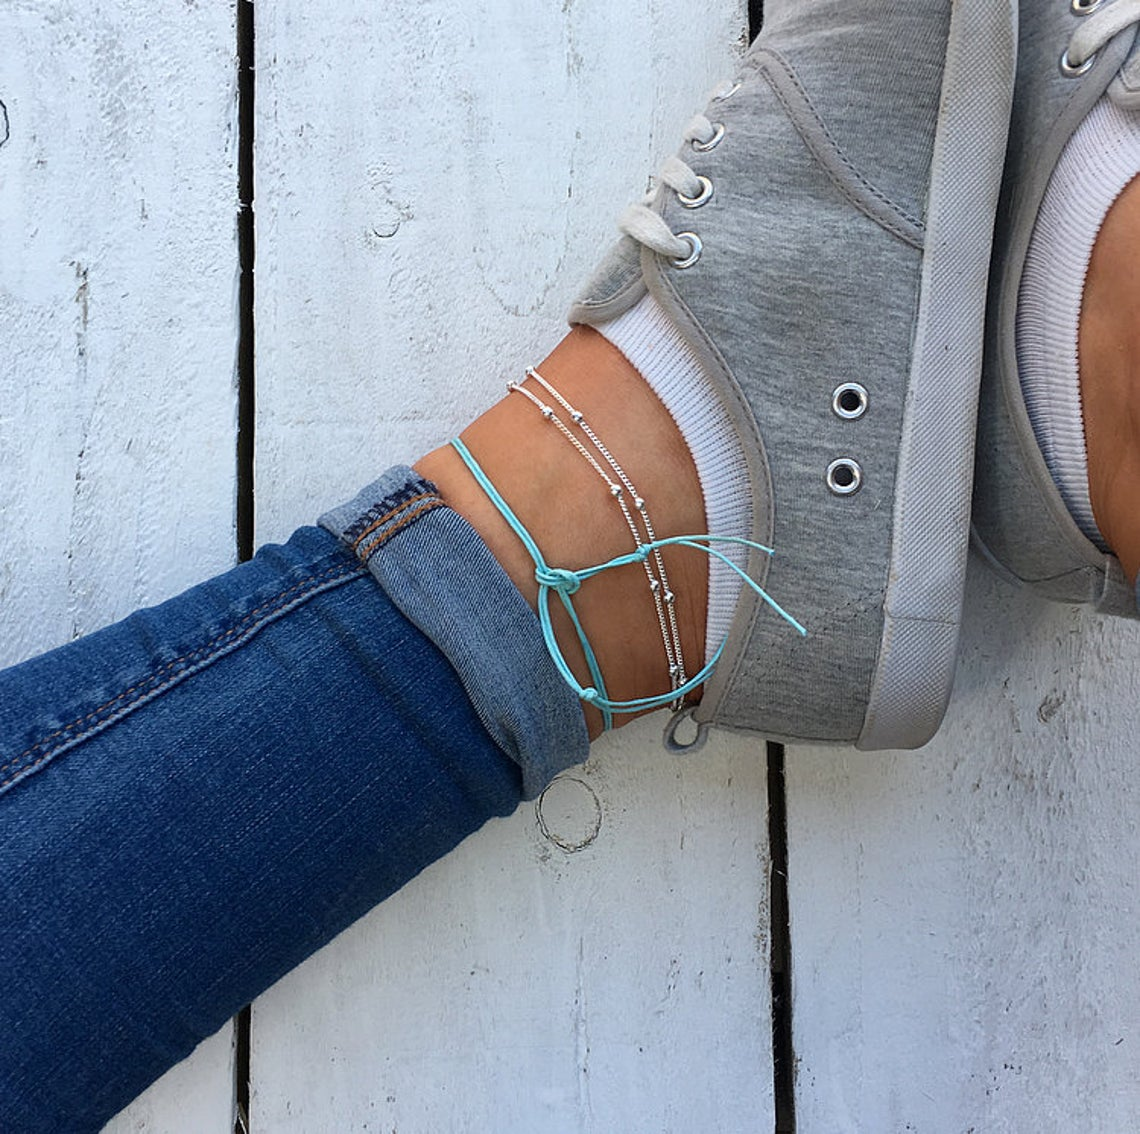 Aqua Blue Sea Turtle Anklet, silver beaded anklet, aqua cord anklet, beaded ankle bracelet, turtle anklet, cute animal anklet by Turtle Toes